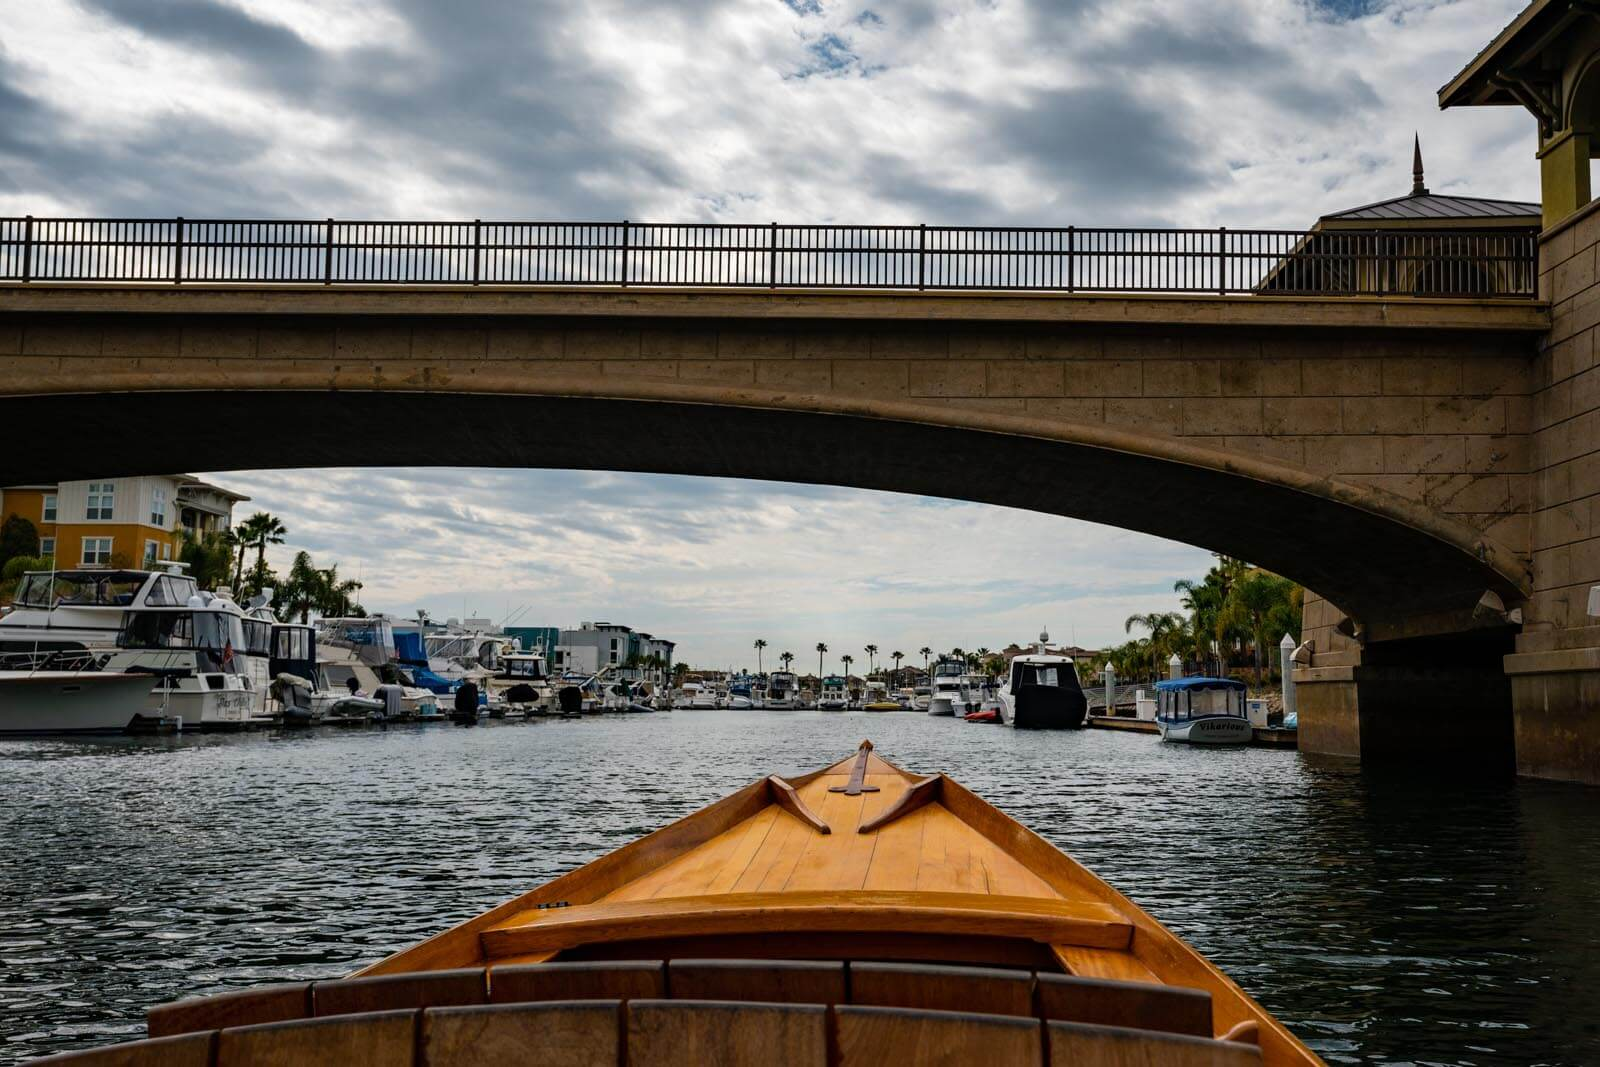 Gondola Ride through the Channel Islands Harbor in Oxnard California